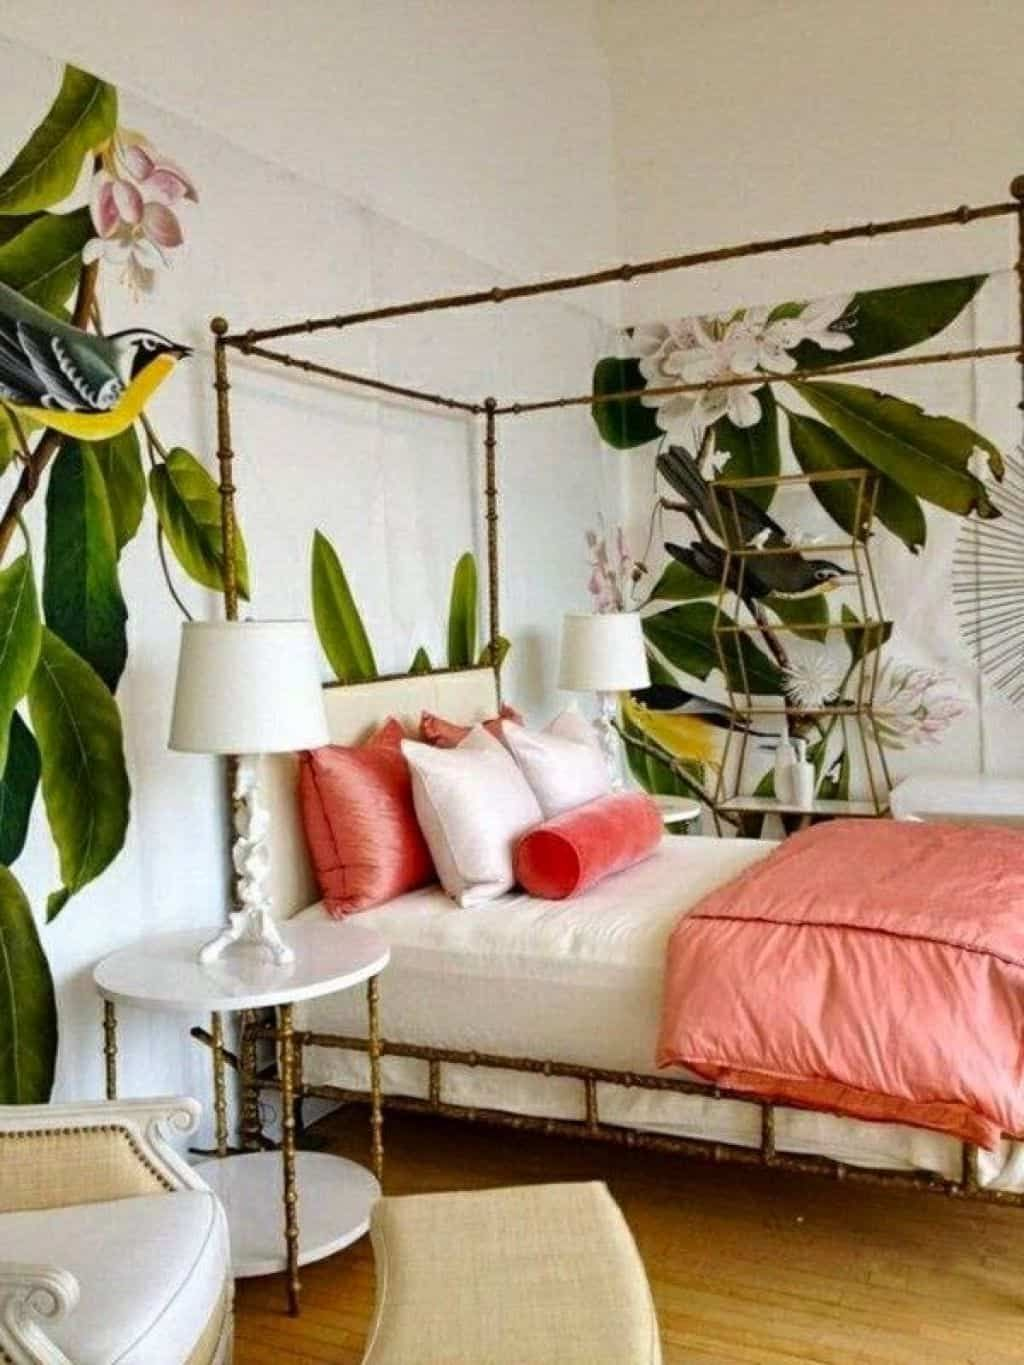 Making A Paradise With Tropical Bedroom Theme Tropical Bedroom